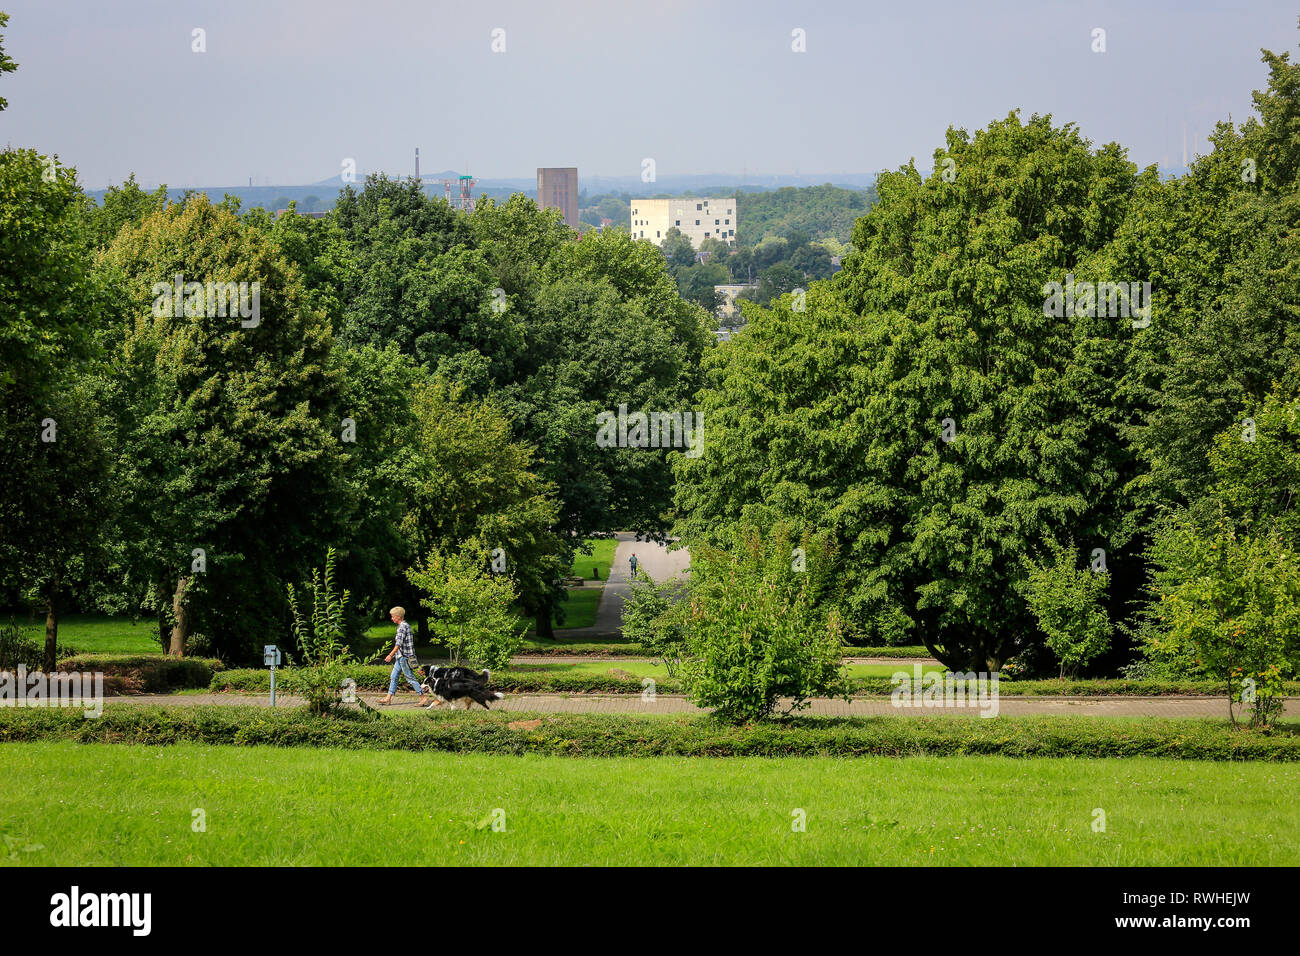 Essen, North Rhine-Westphalia, Ruhr area, Germany - The Hallopark between Stoppenberg and Schonnebeck is one of the oldest green areas in Essen. View  - Stock Image